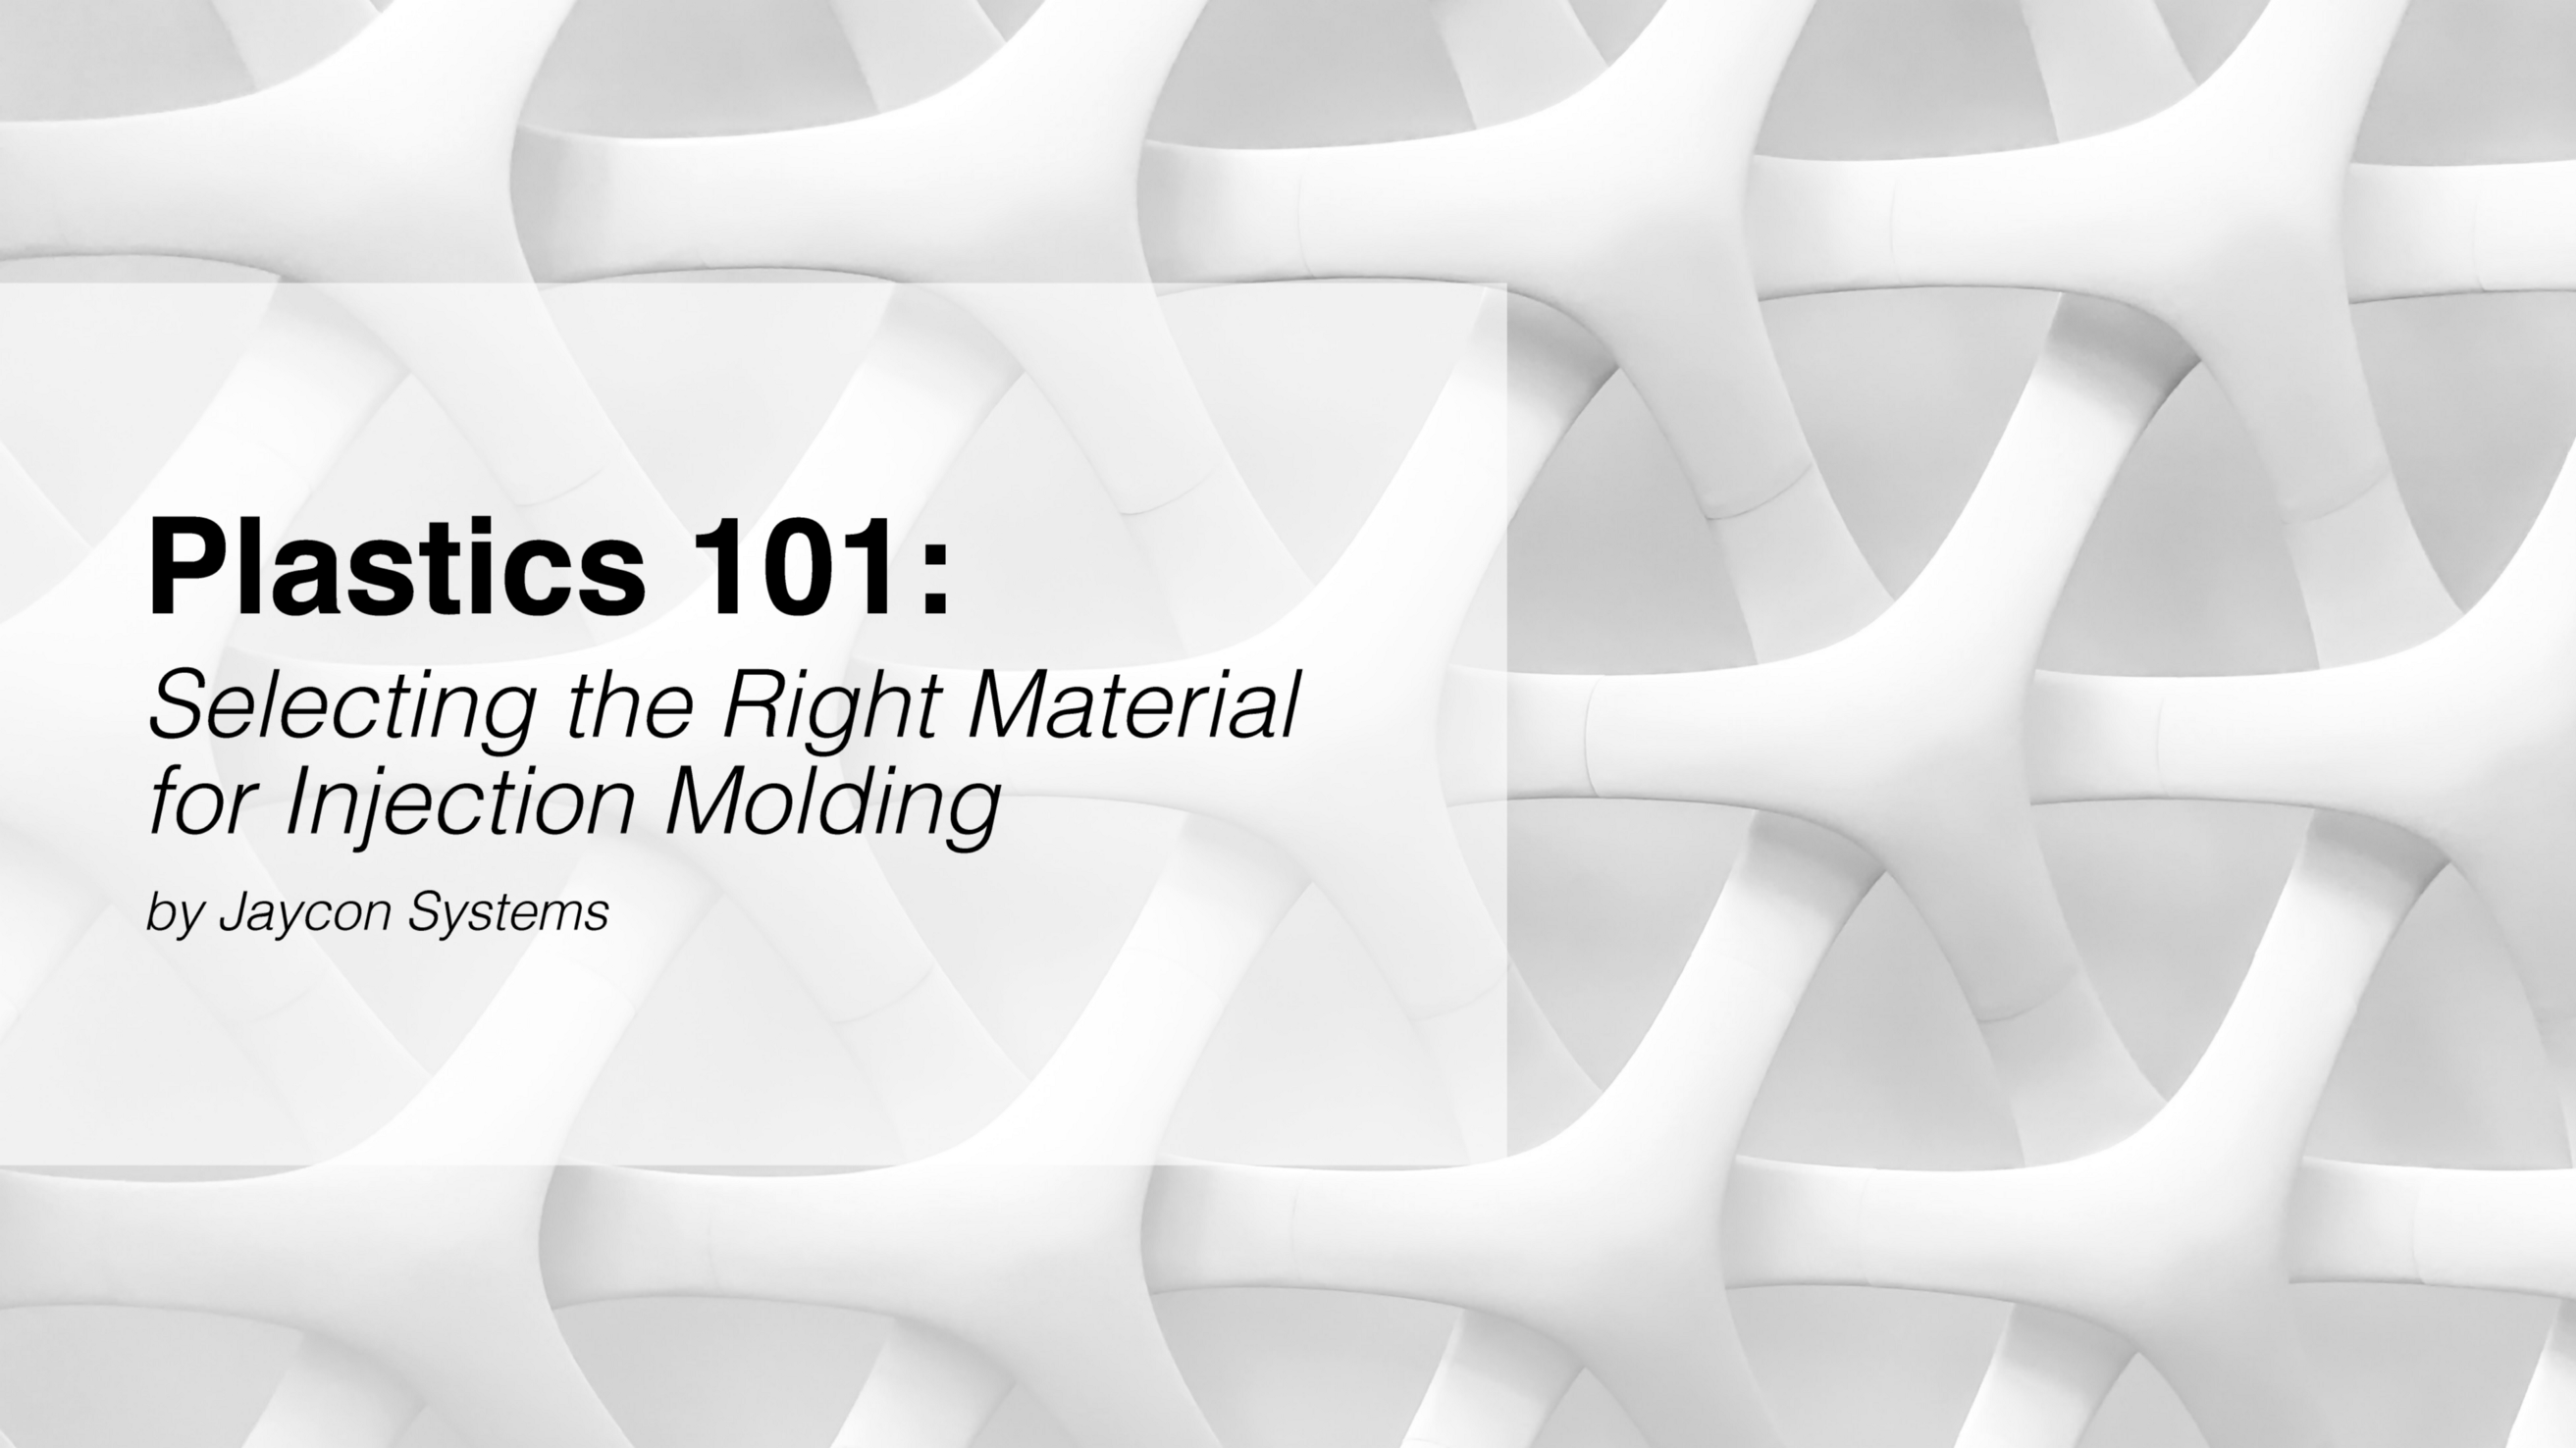 Plastics 101: Selecting the Right Material for Injection Molding